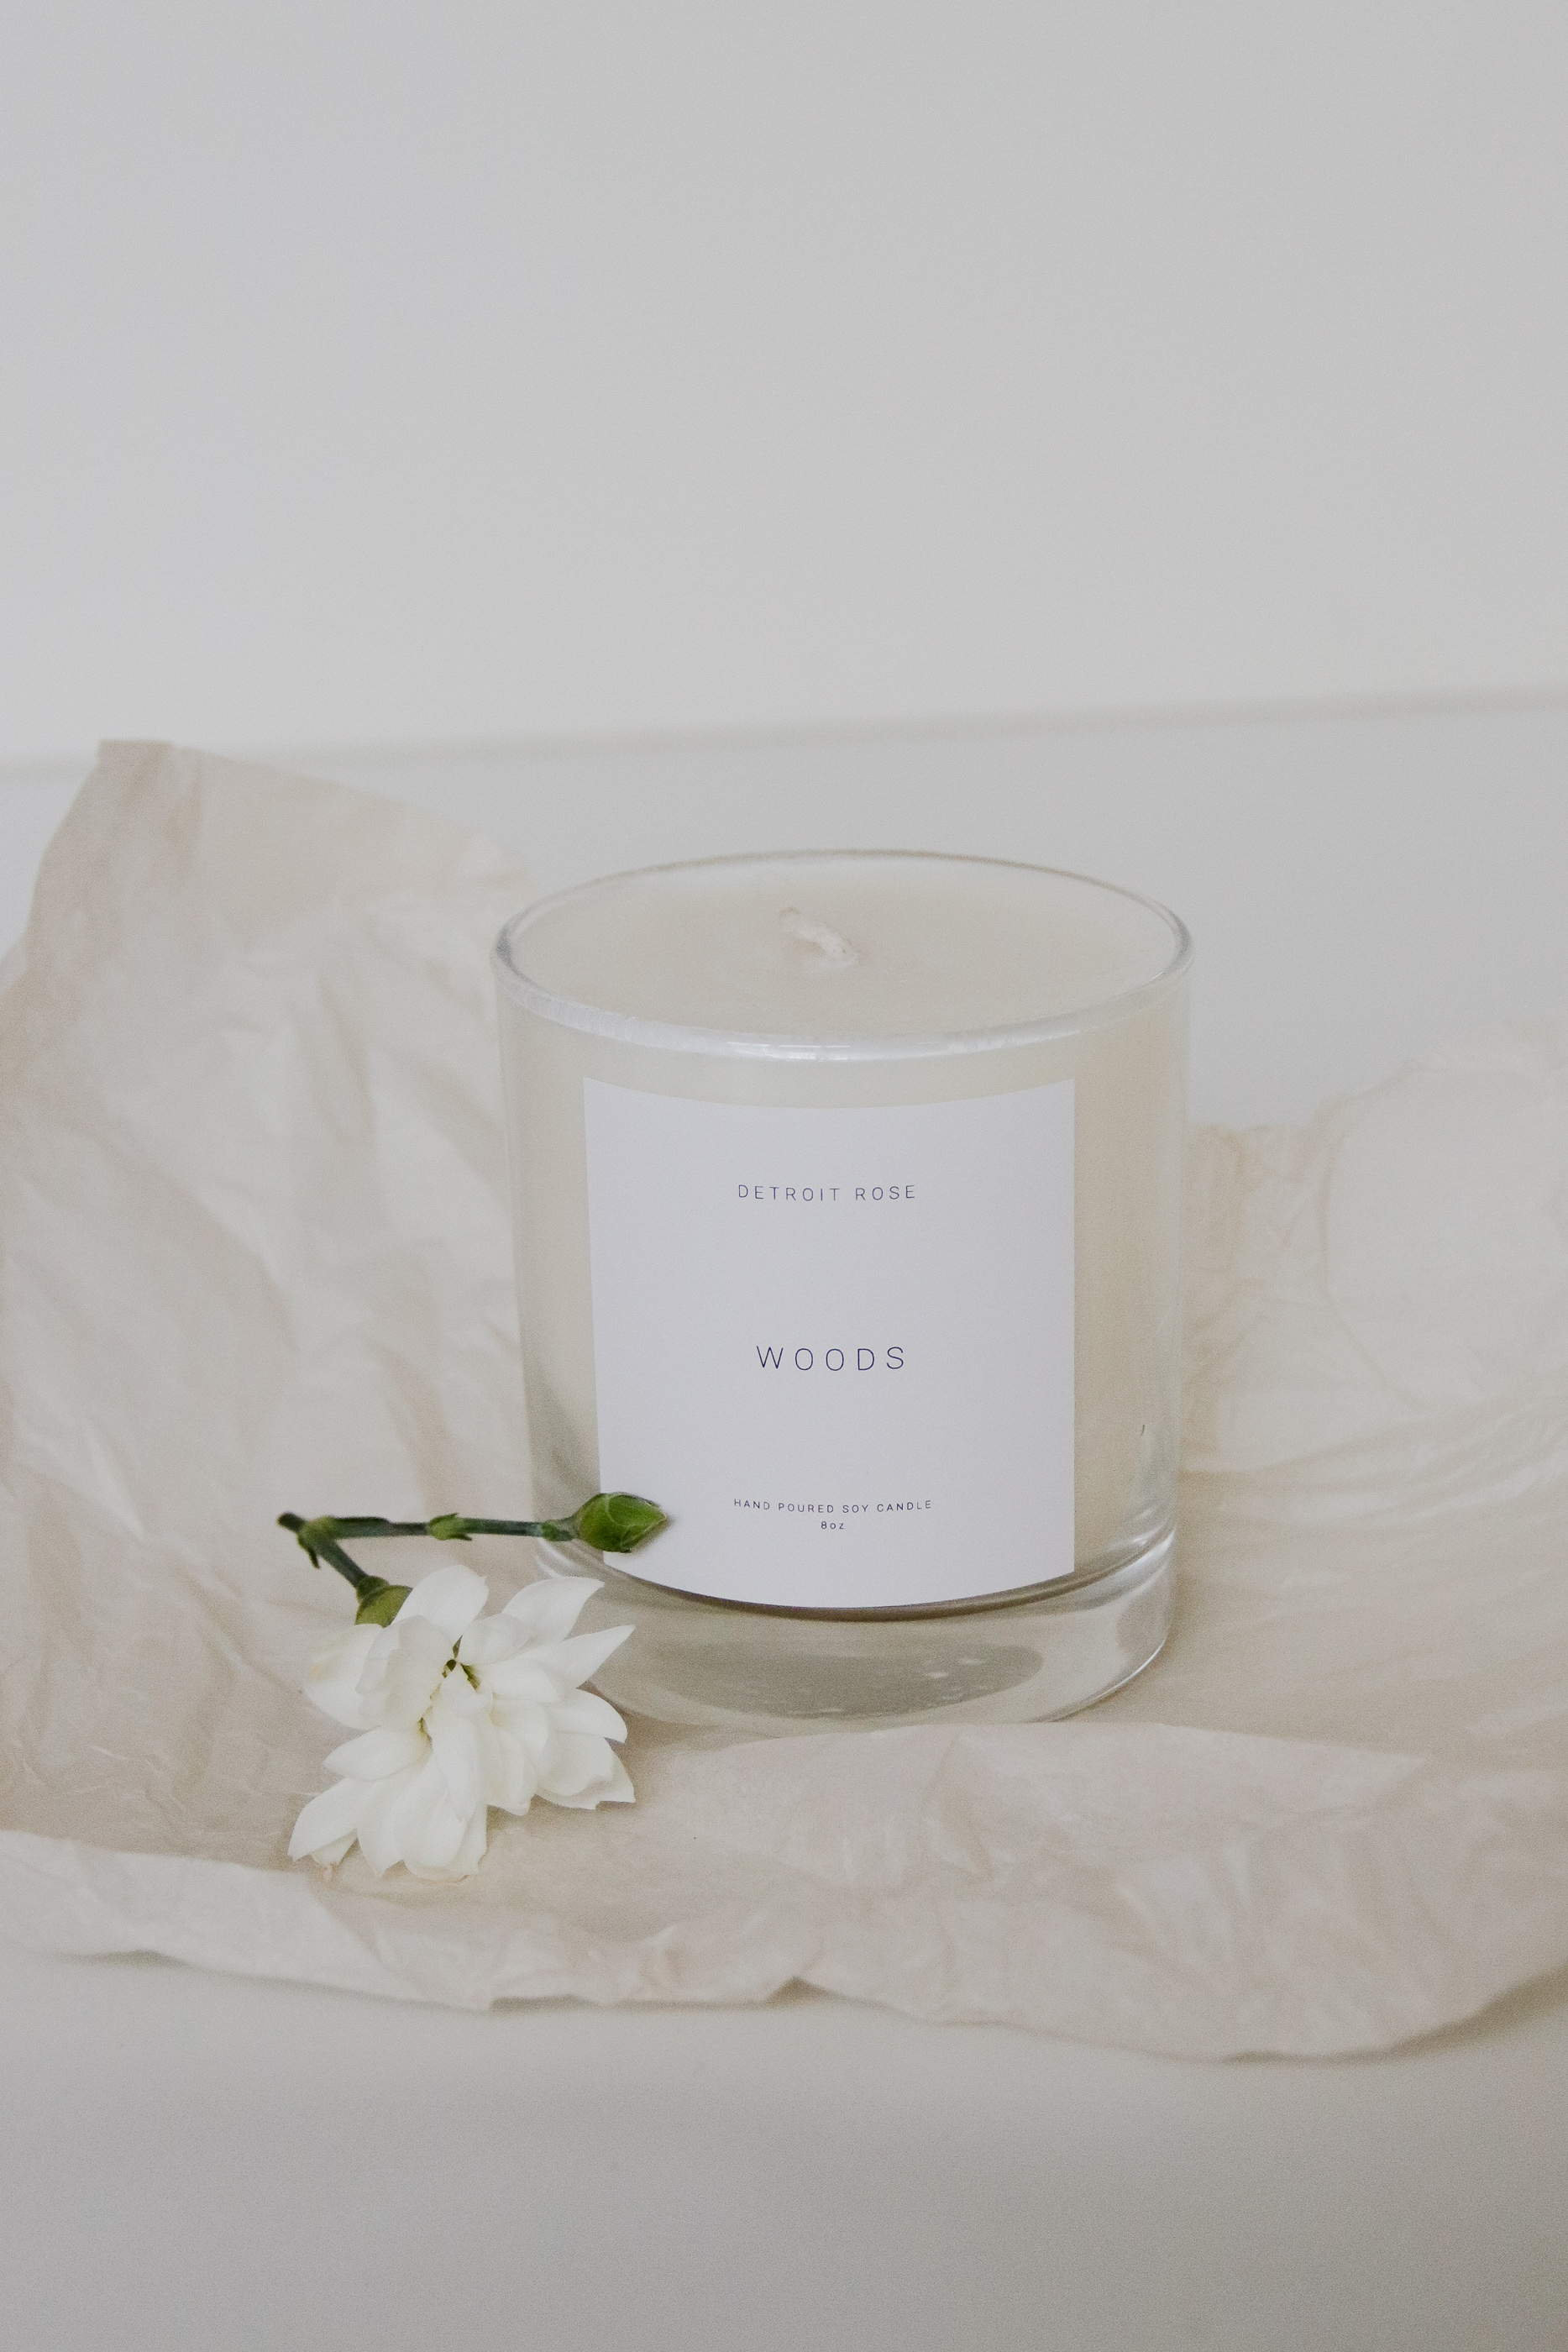 Woods Soy Candle -Detroit Rose - $32